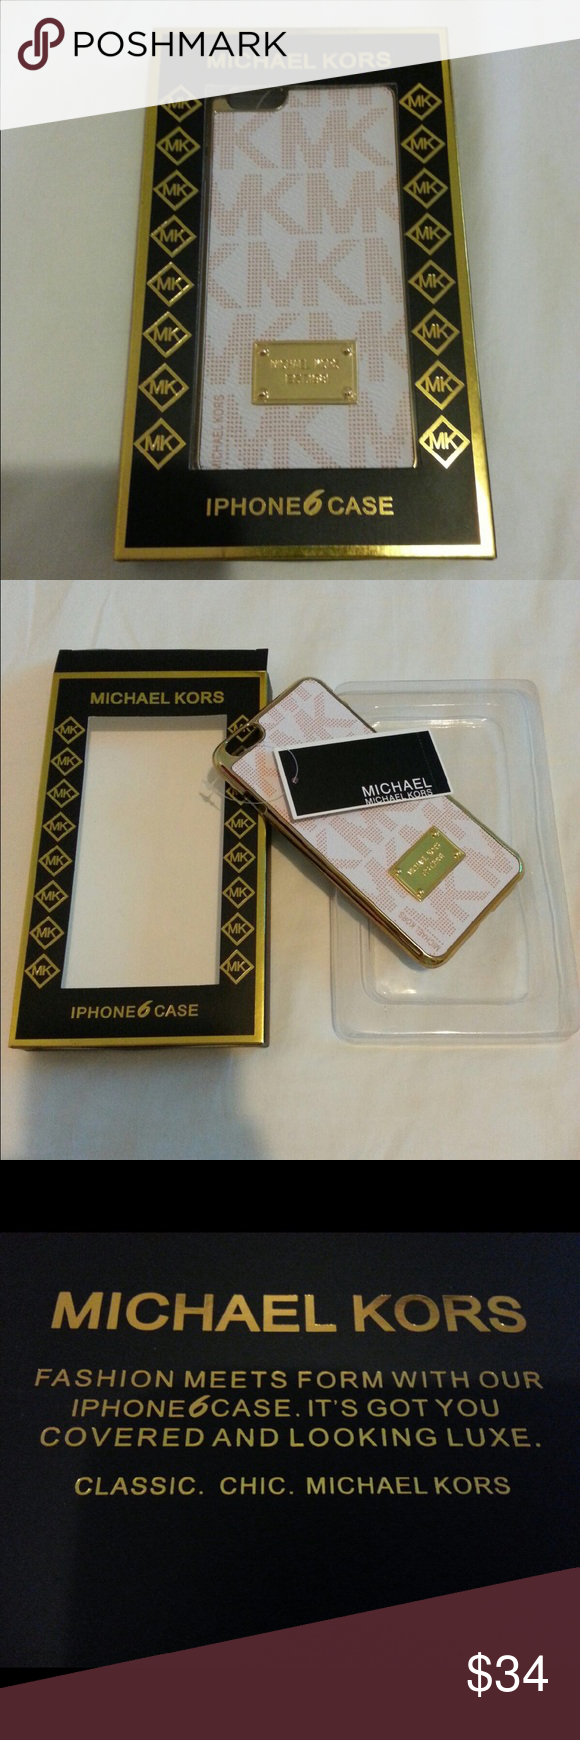 LUXURY MICHAEL KORS iPHONE CASES!!! LUXURY MICHAEL KORS iPHONE CASES!!!  BRAND NEW W/TAGS IN RETAIL PACKAGING!!!  AVAILABLE FOR iPHONE 6 PLUS & 6s PLUS!!!   VERY LUXURIOUS AND RARE!!!  RETAIL PRICE - $58.00 EACH!!!  GREAT GIFT IDEA!!!  CHECK MY LISTINGS FOR OTHER GREAT ITEMS!!!            Ignore: mk Michael kor kors Apple case cover cases covers Michael Kors Accessories Phone Cases